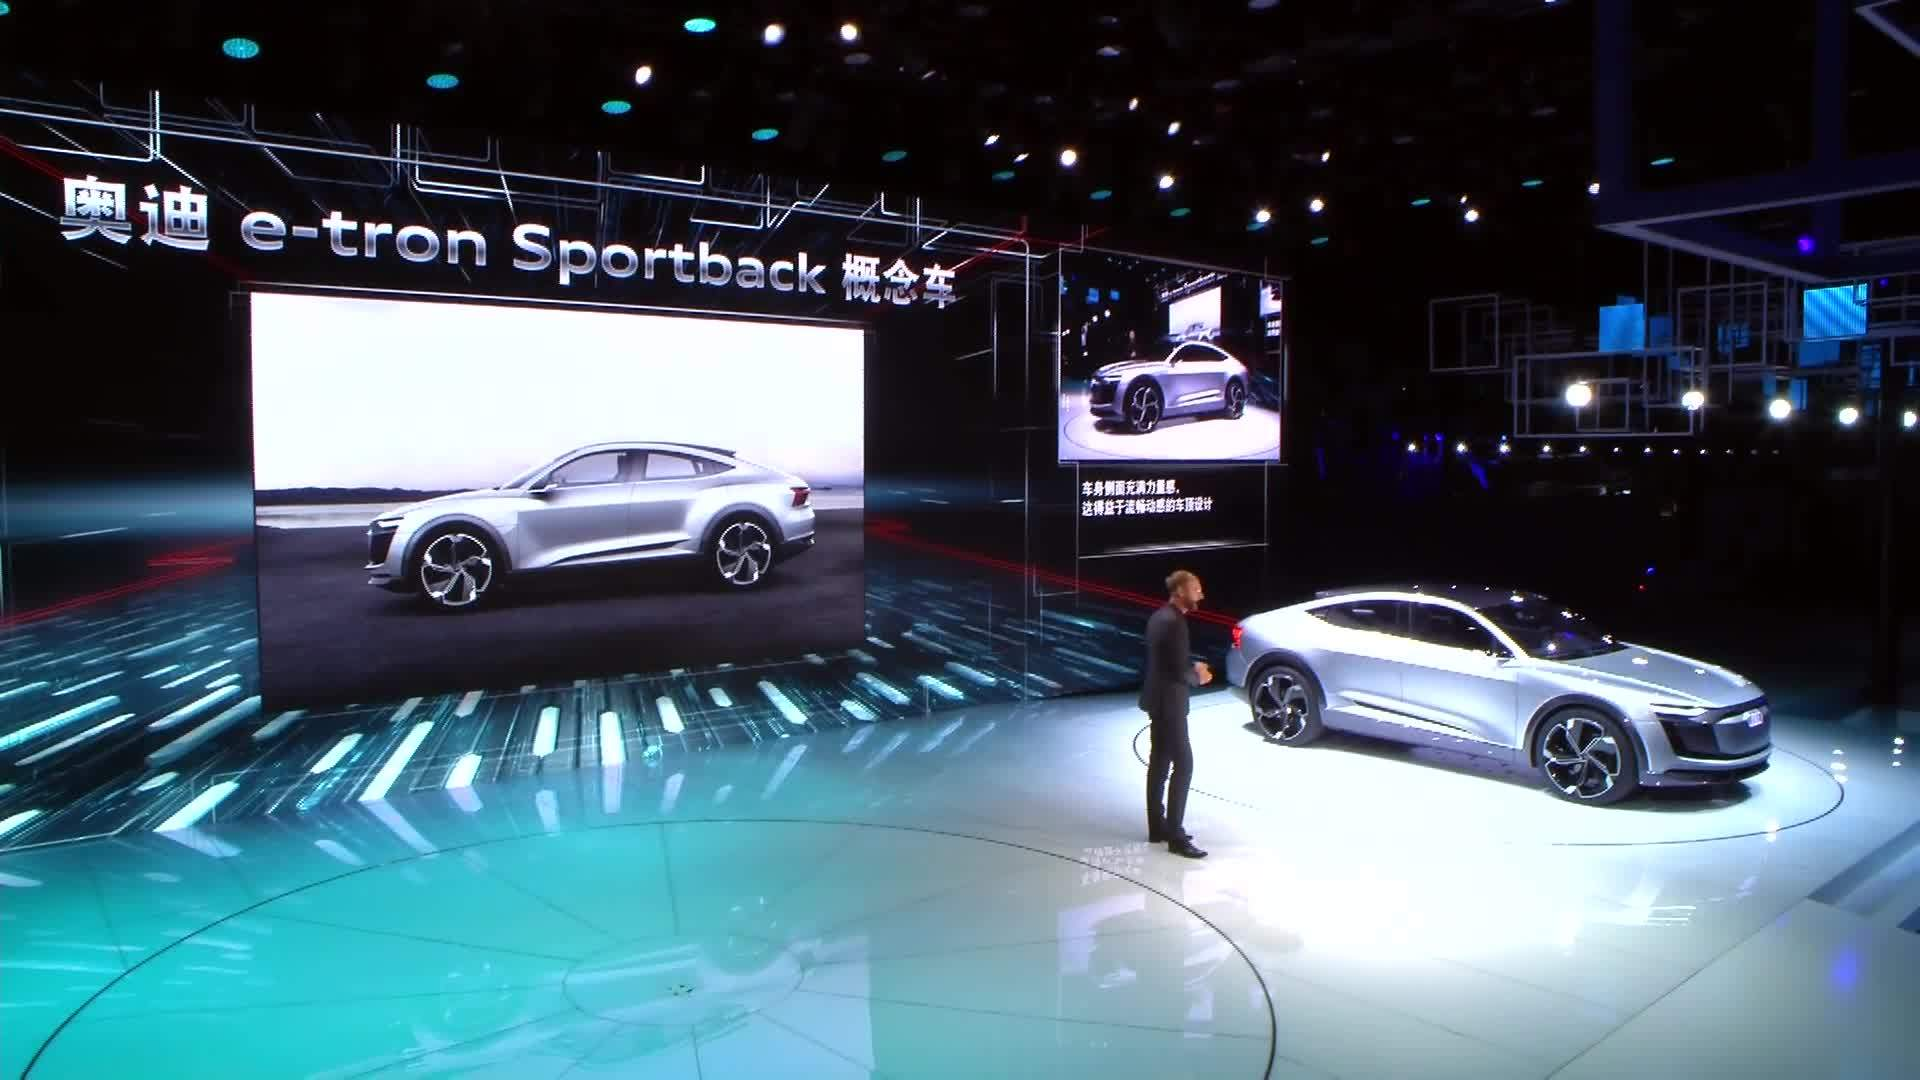 The Audi press conference at the Auto Shanghai 2017